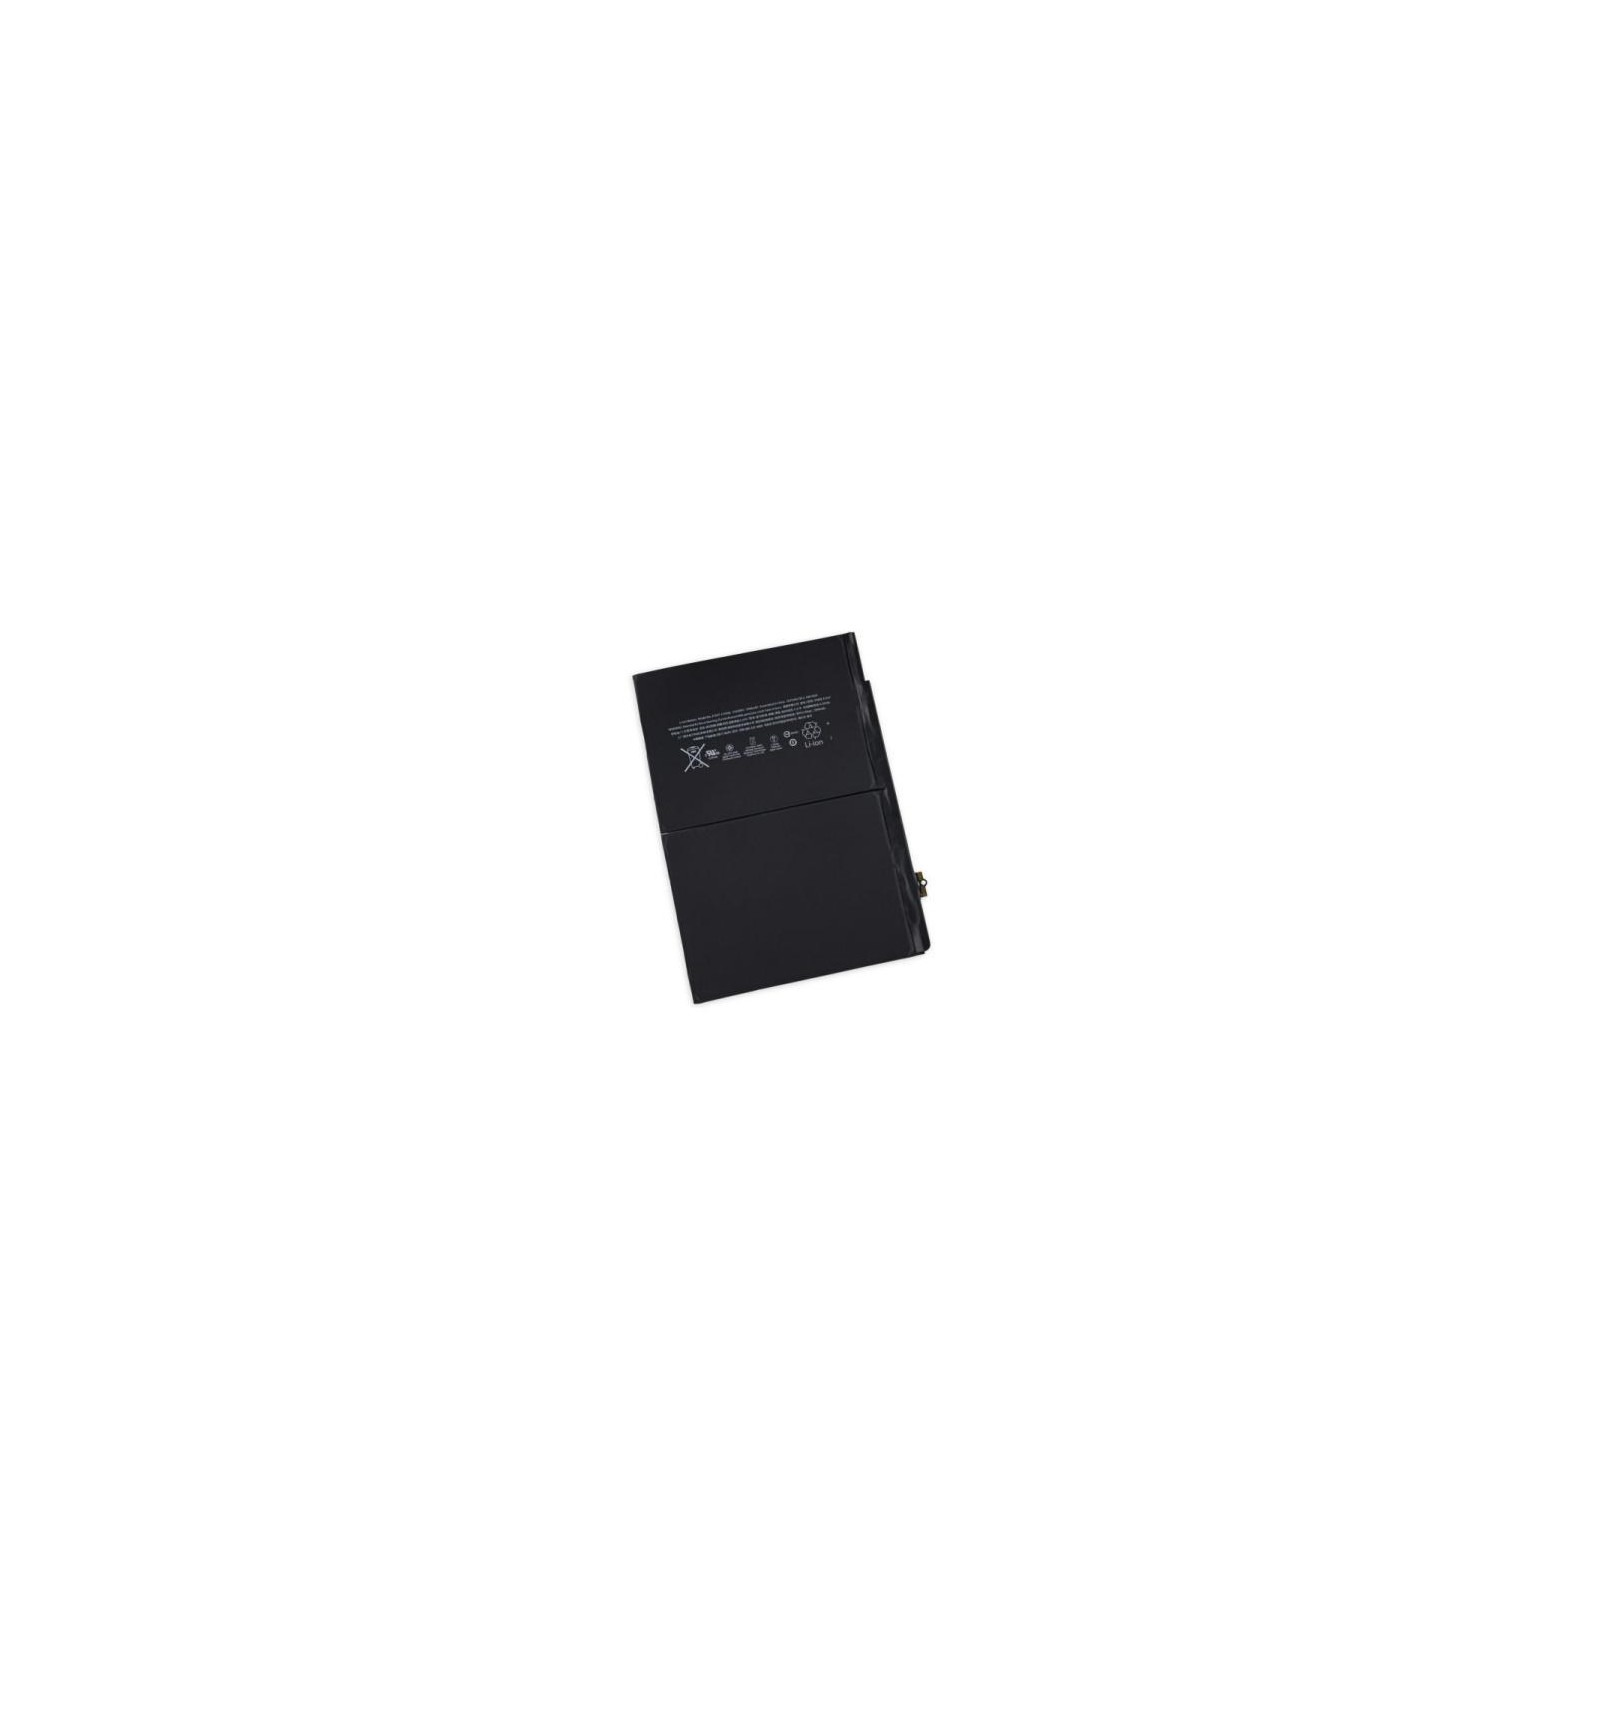 M: ipad air 2 battery replacement